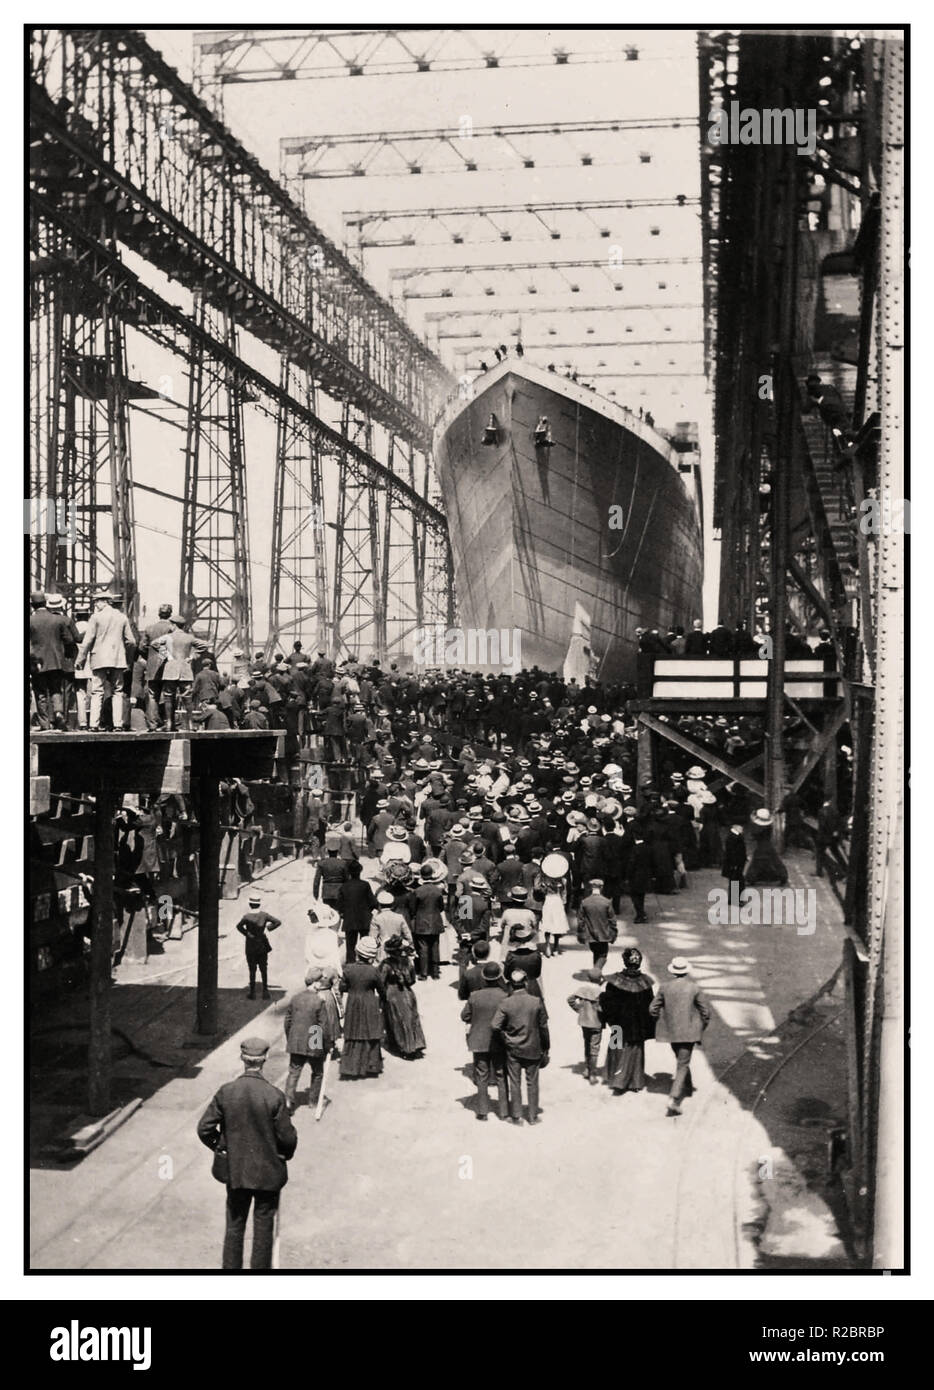 TITANIC SLIPWAY Launching of RMS Titanic with crowds of invited guests at Harland & Wolff shipyards Northern Ireland 31st May 1911 - Stock Image